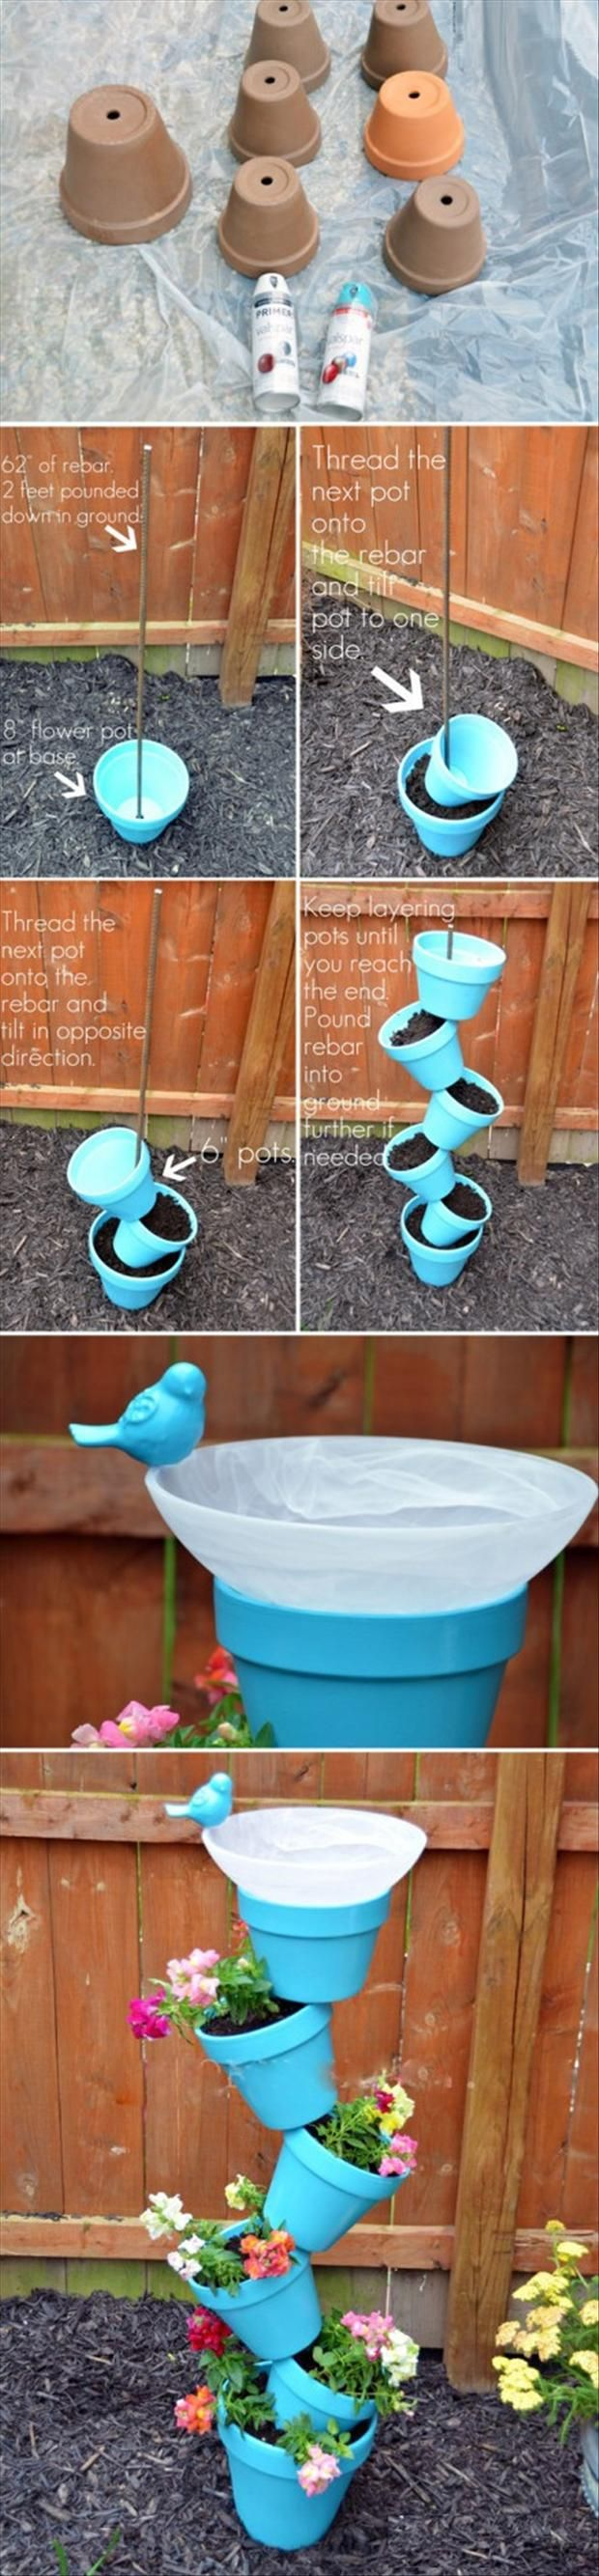 This is adorable!  And I might use a planter saucer on tip and grout mosaics in it. For more color in the birdbath.